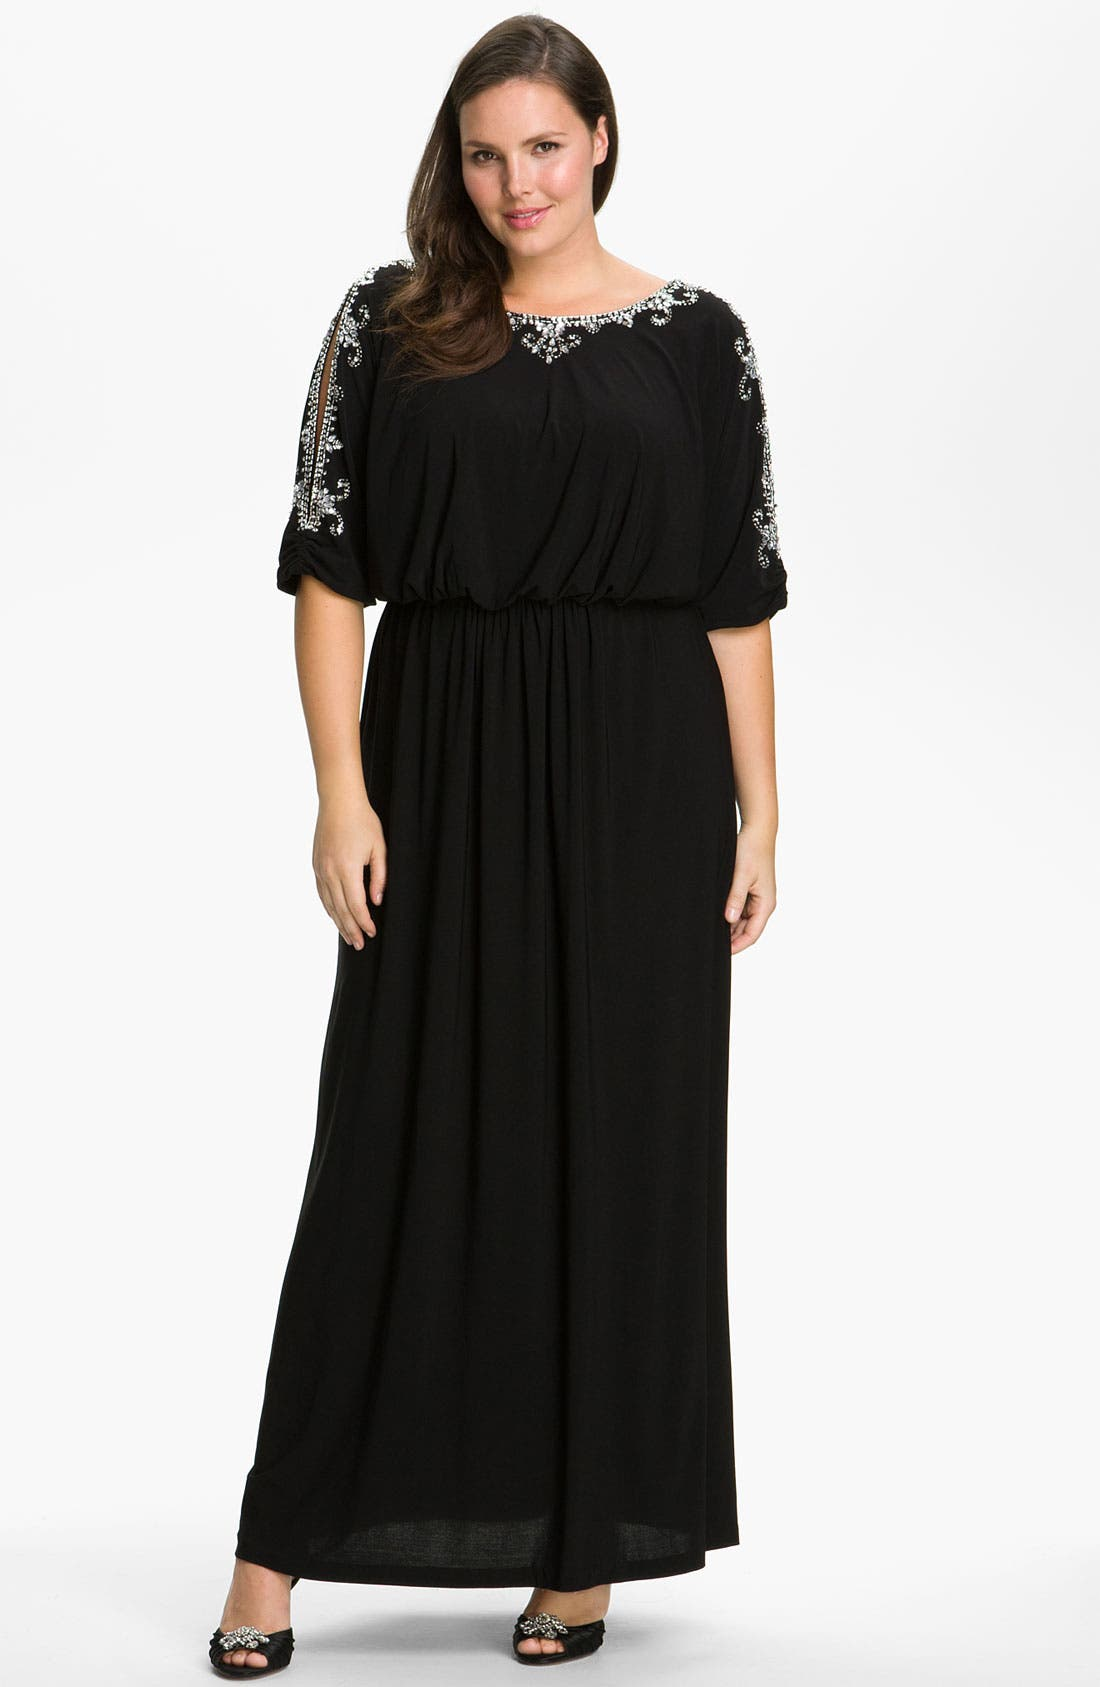 Main Image - Alex Evenings Beaded Cold Shoulder Blouson Dress (Plus)